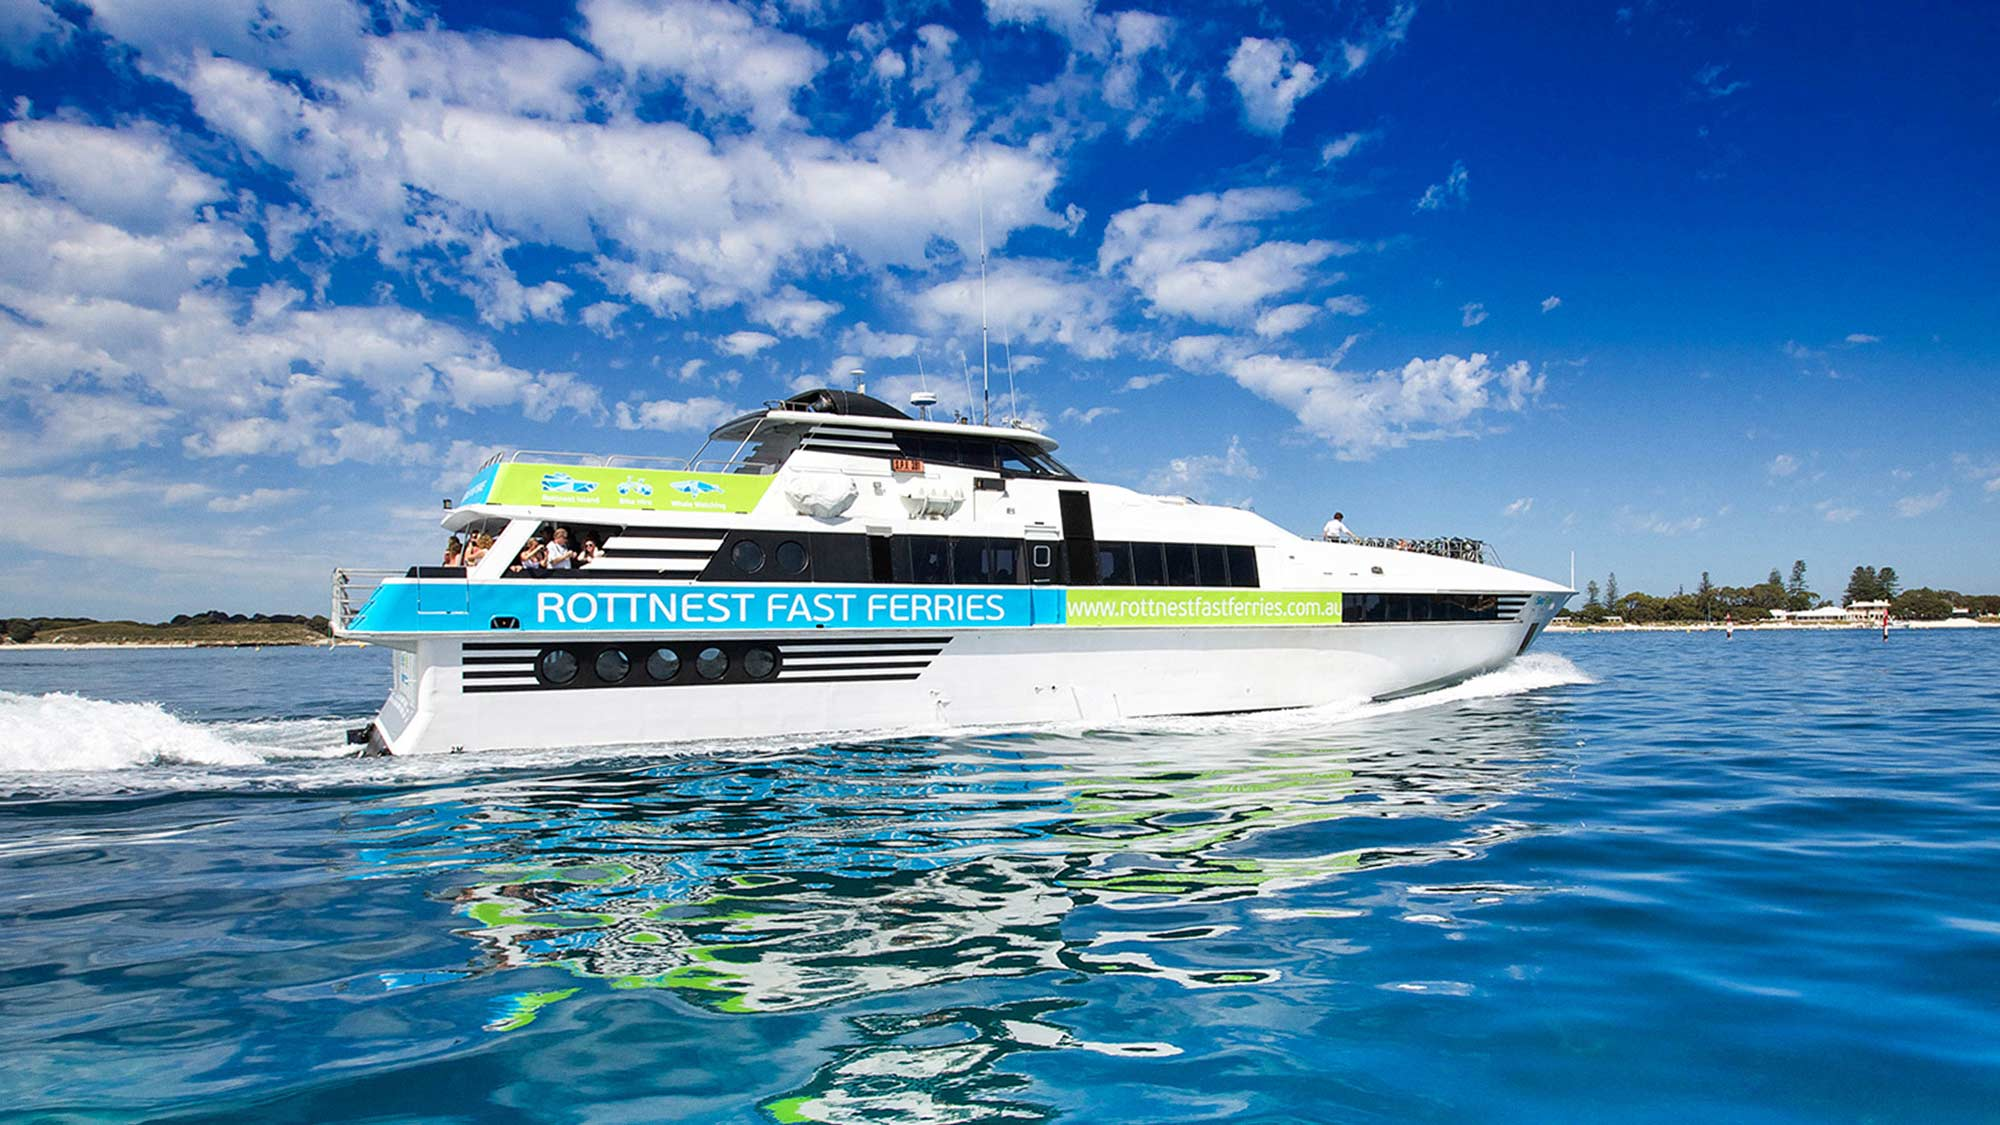 Photo of the Rottnest Fast Ferries ferry just outside Thompson Bay in Rottnest, W.A. Photo taken by Simon Spencer of Pixel Whip